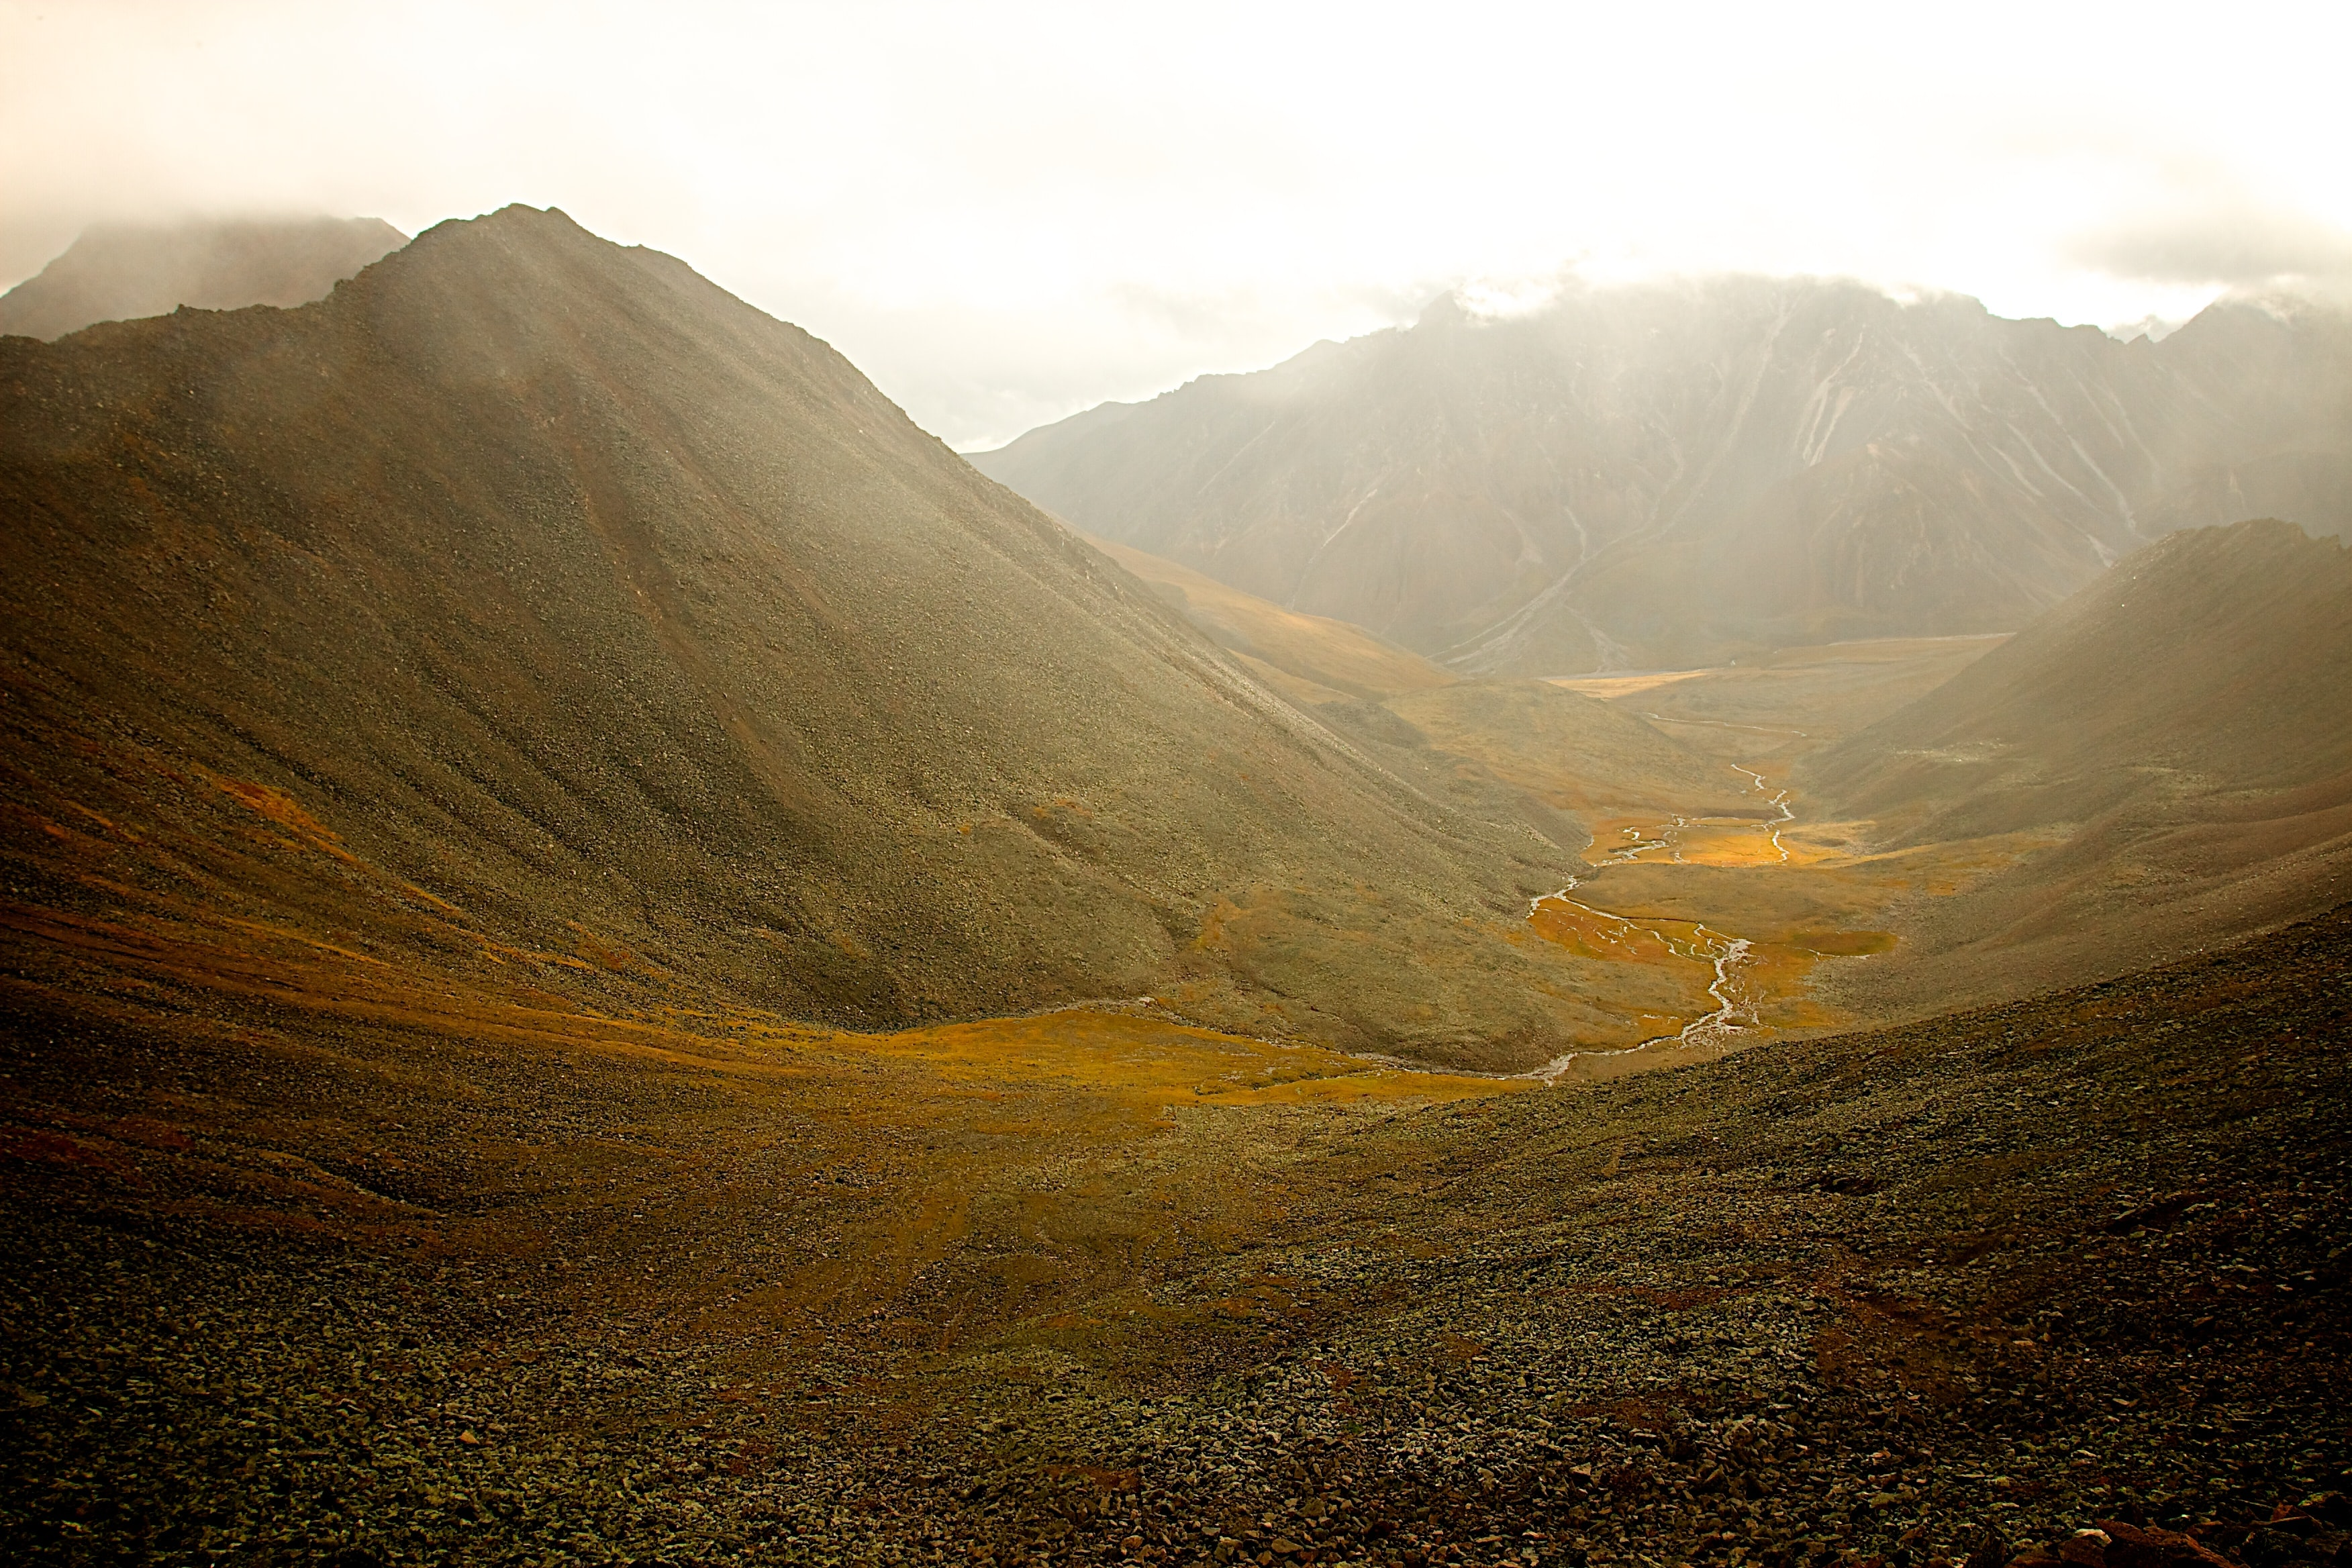 A yellow and brown mountain valley with a narrow stream on its floor